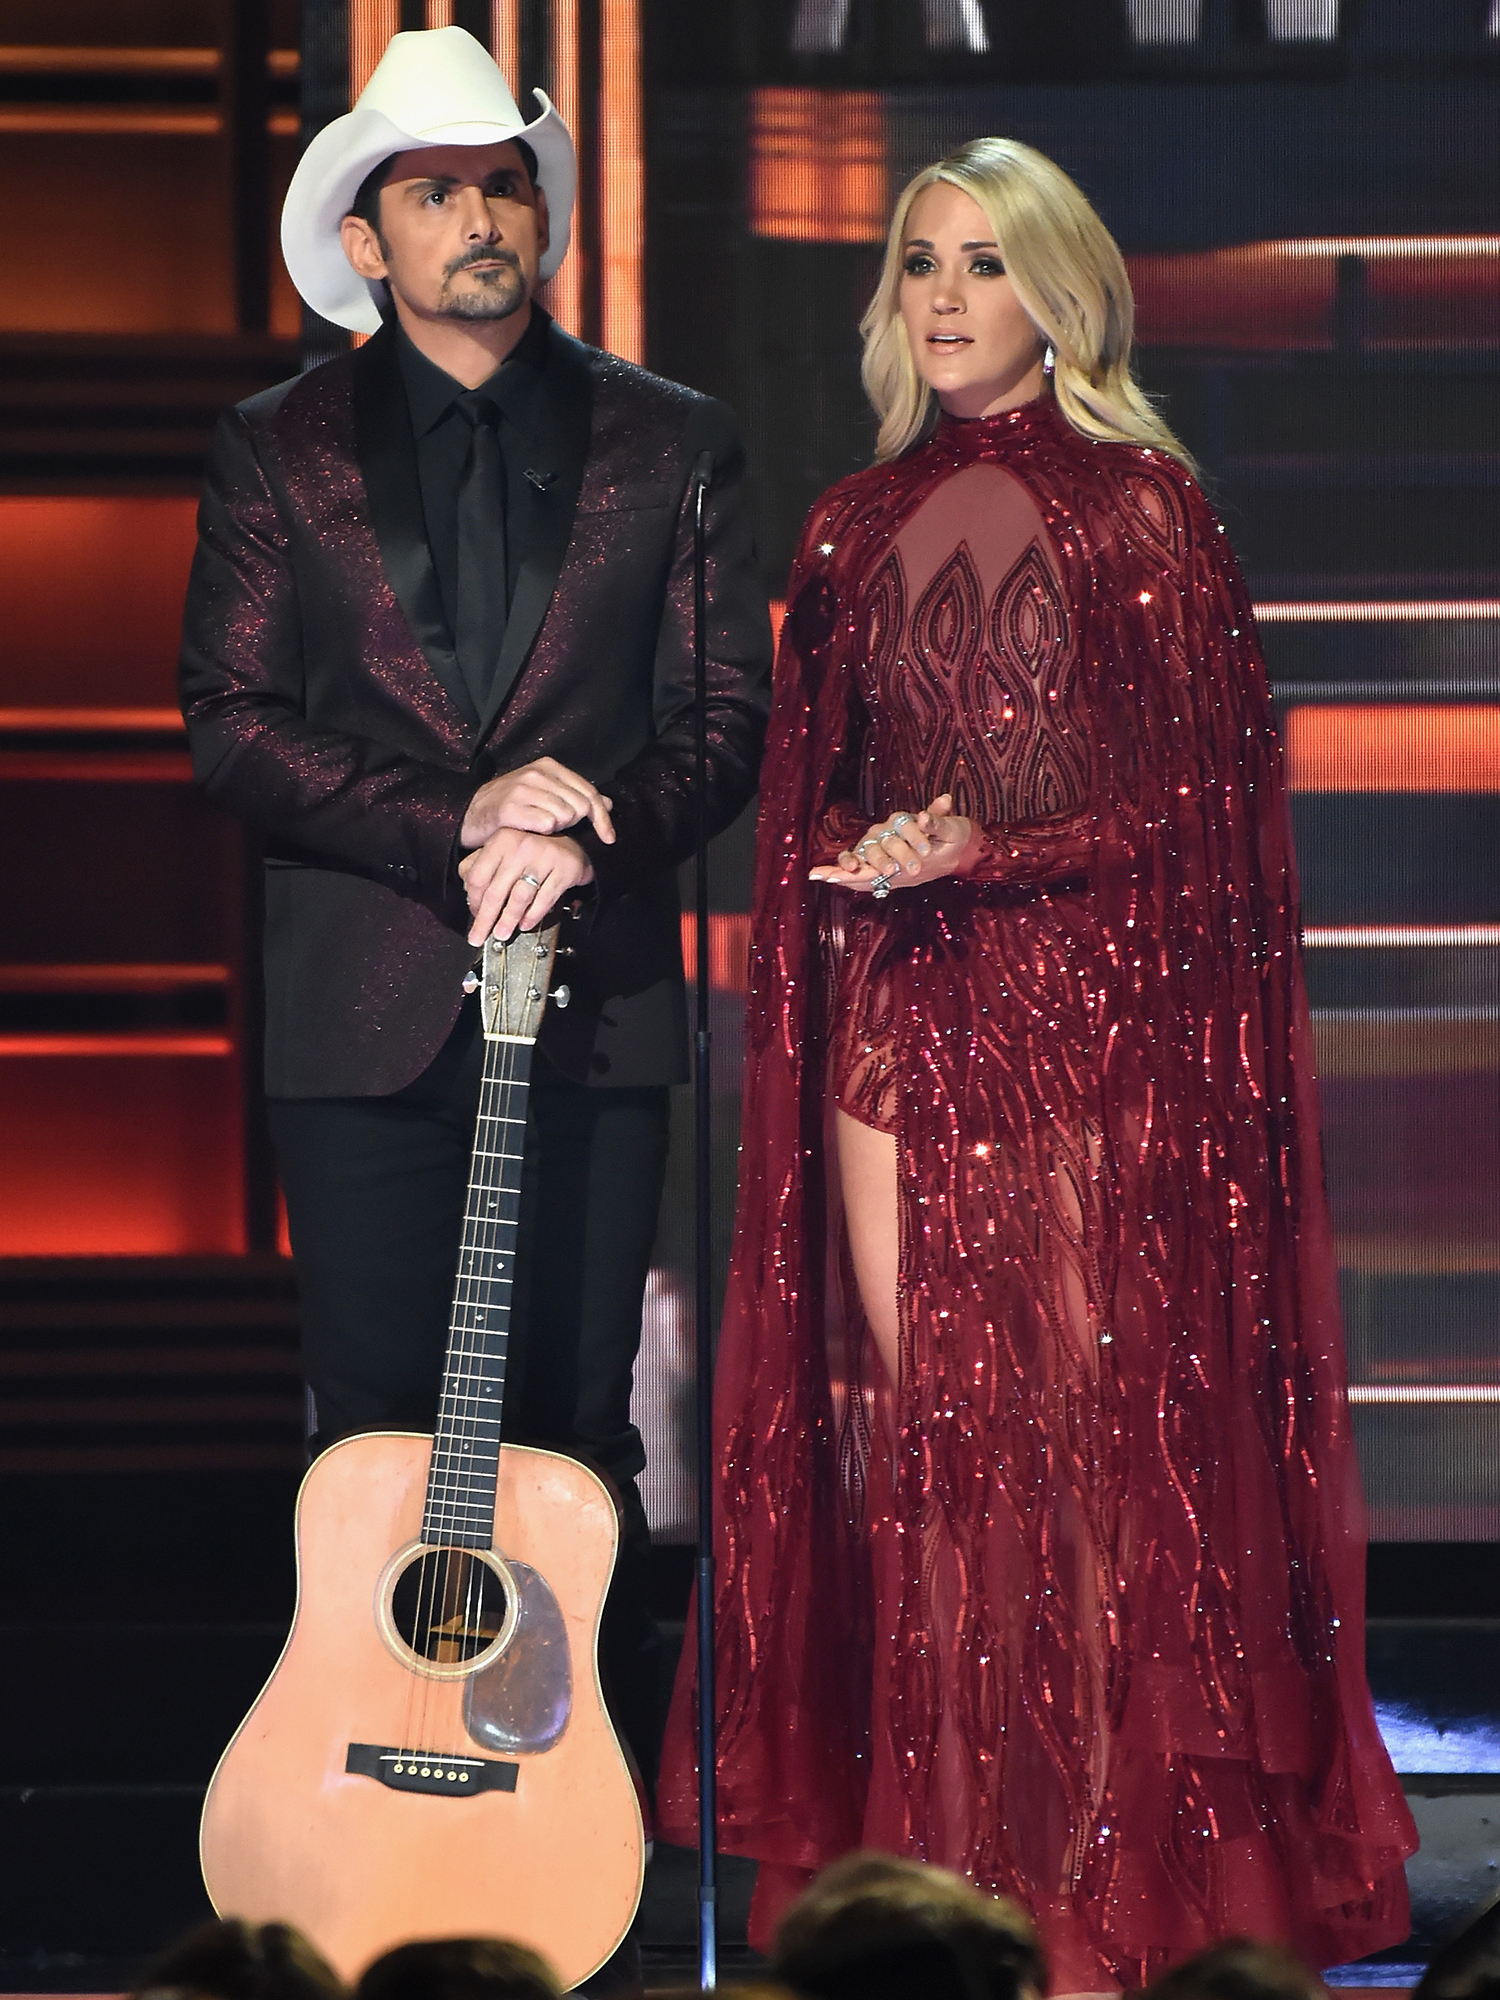 Carrie Underwood in Sparkling Red Gown